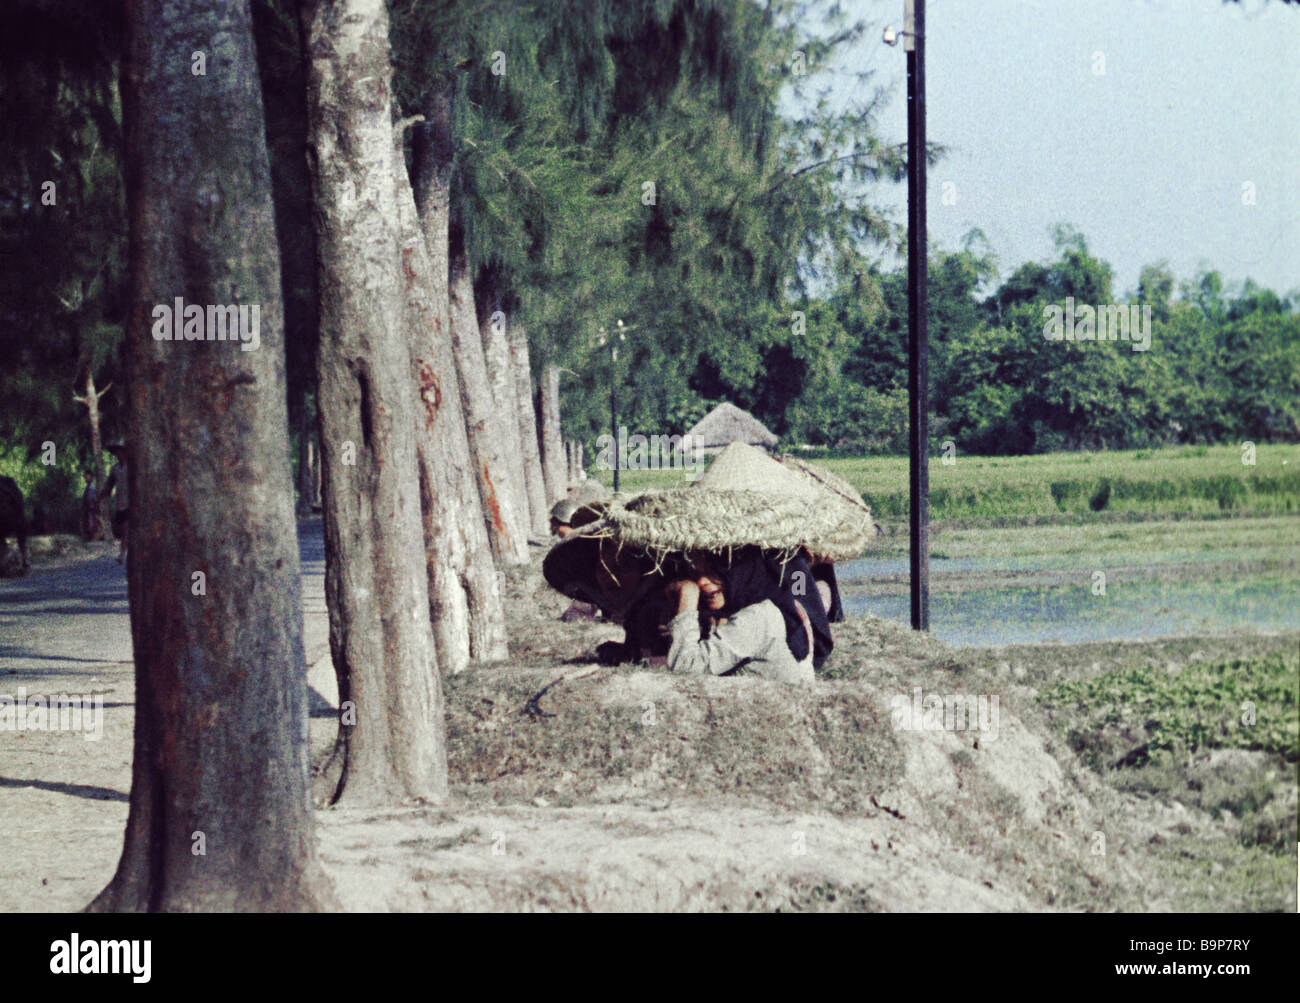 Vietnamese hiding from bullets and splinters under shields made of wicker straw - Stock Image